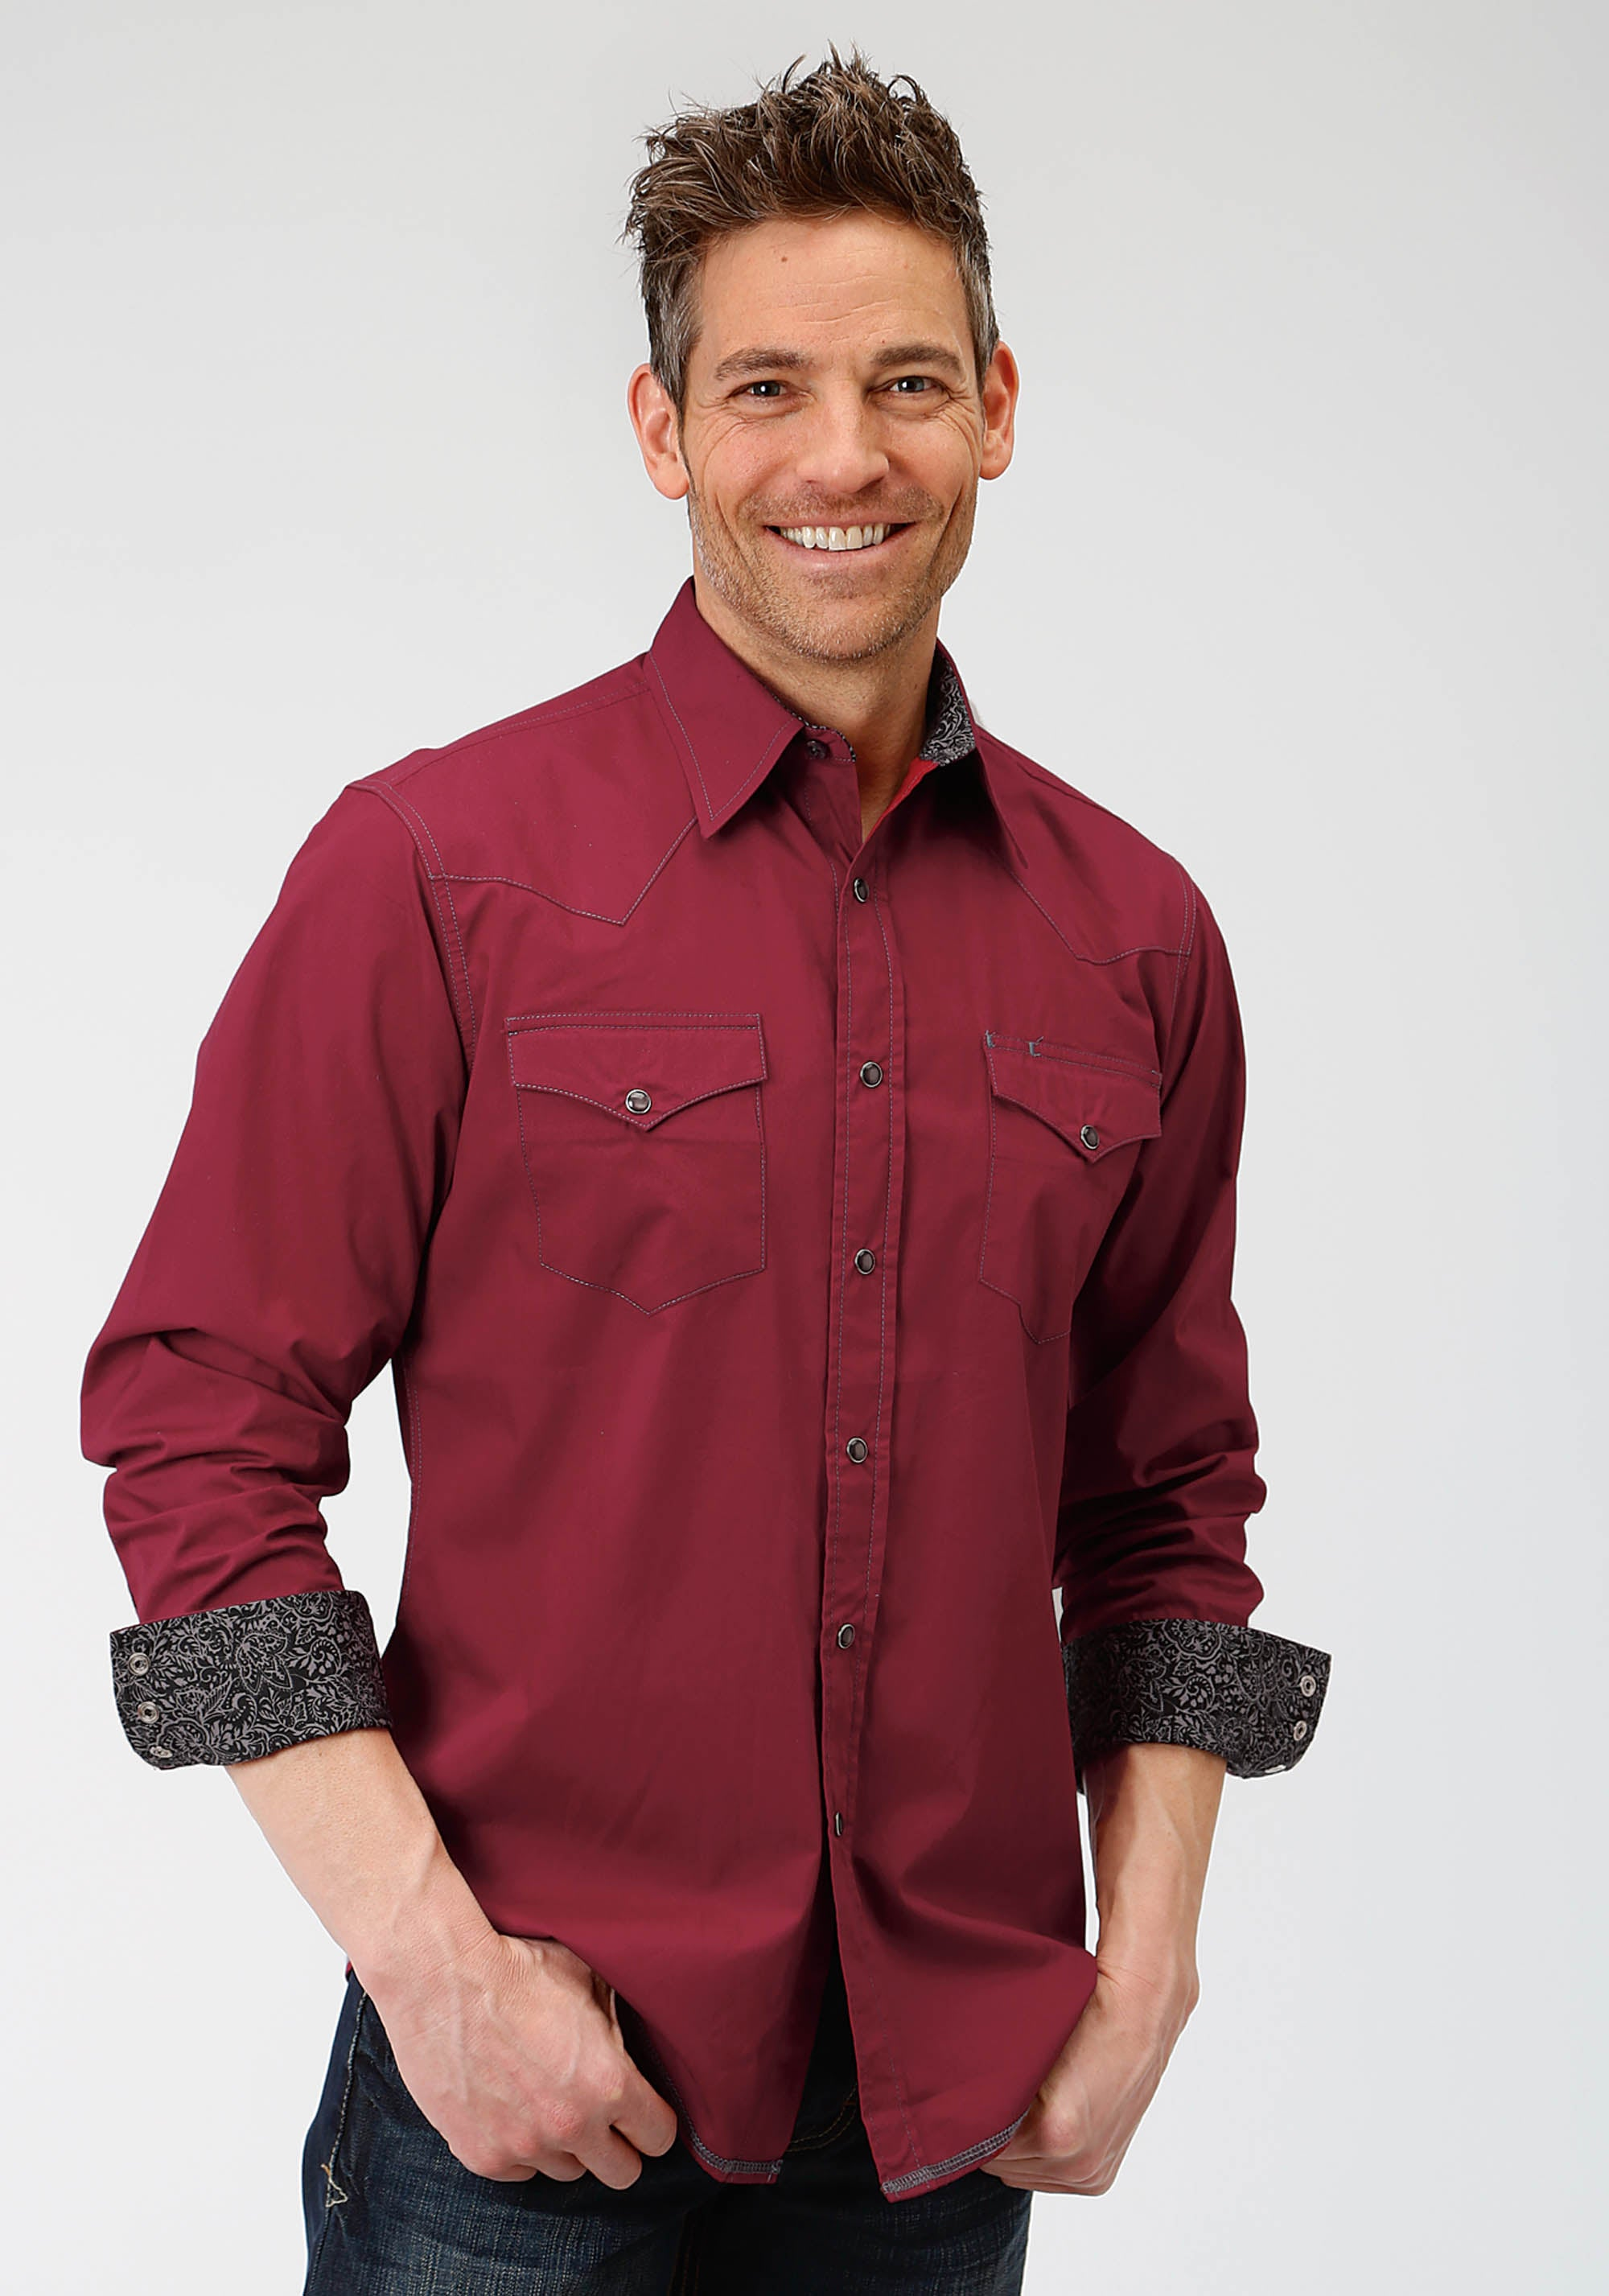 ROPER MENS WINE 3927 SOLID POPLIN - DEEP WINE WEST MADE COLLECTION LONG SLEEVE